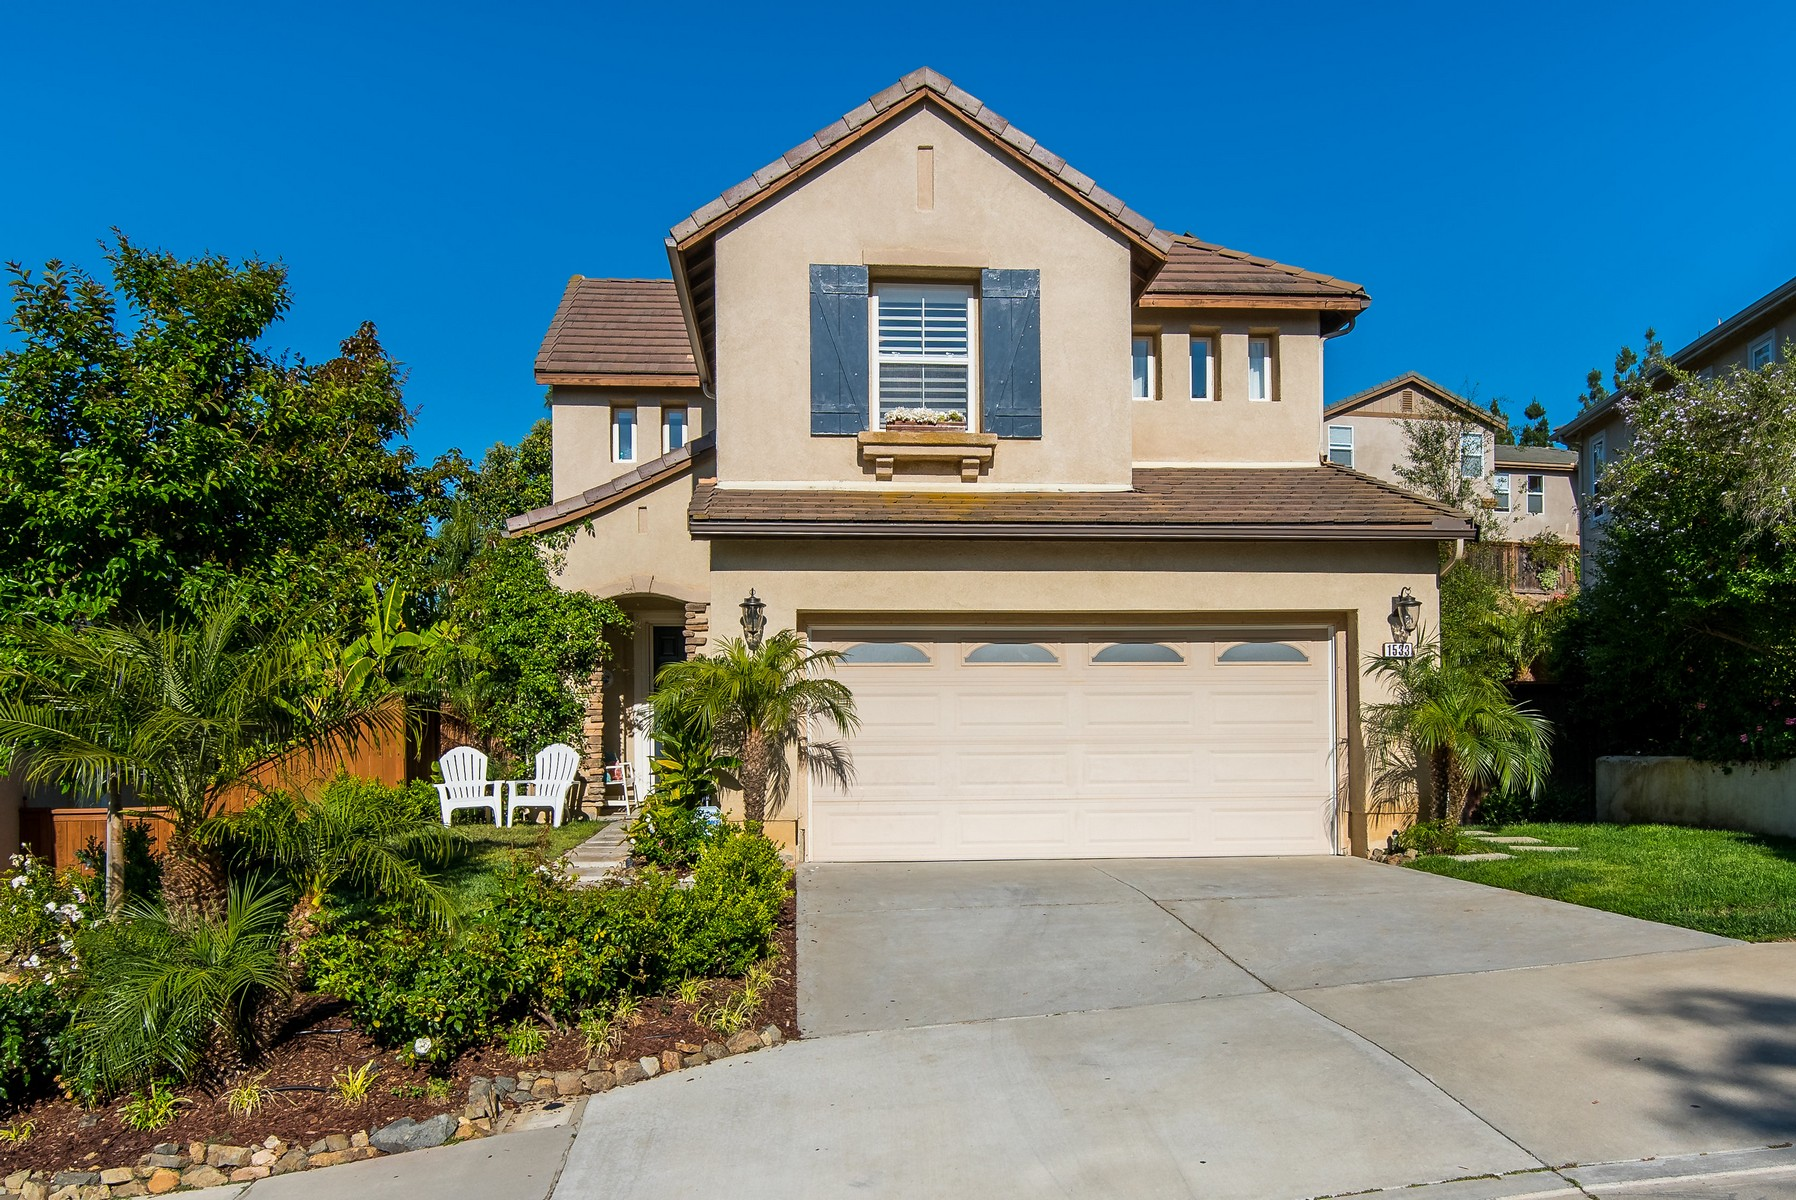 Single Family Home for Sale at 1533 Black Walnut Drive San Marcos, California 92078 United States